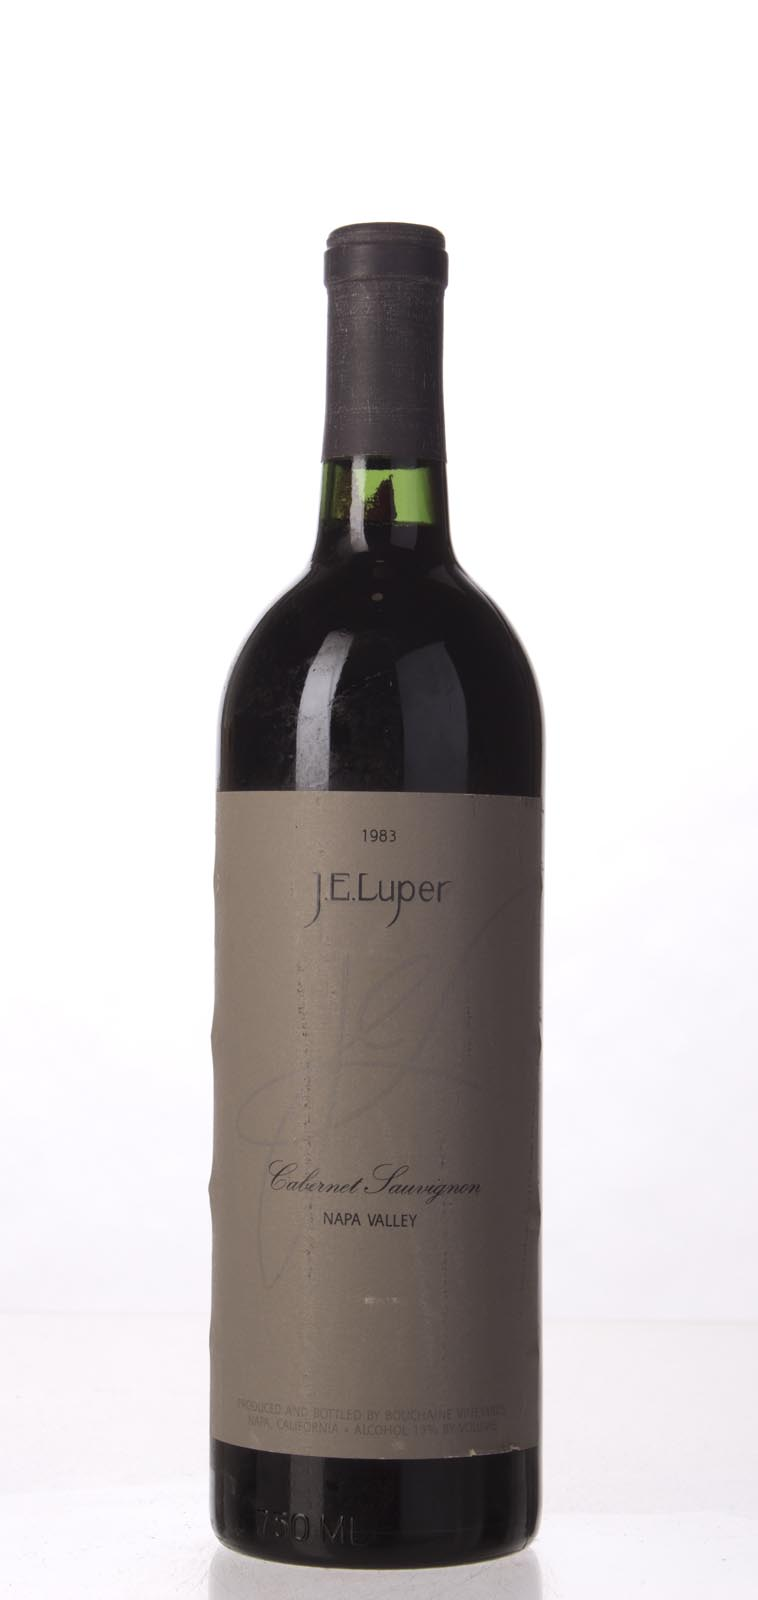 J.E. Luper Cabernet Sauvignon 1983, 750mL () from The BPW - Merchants of rare and fine wines.